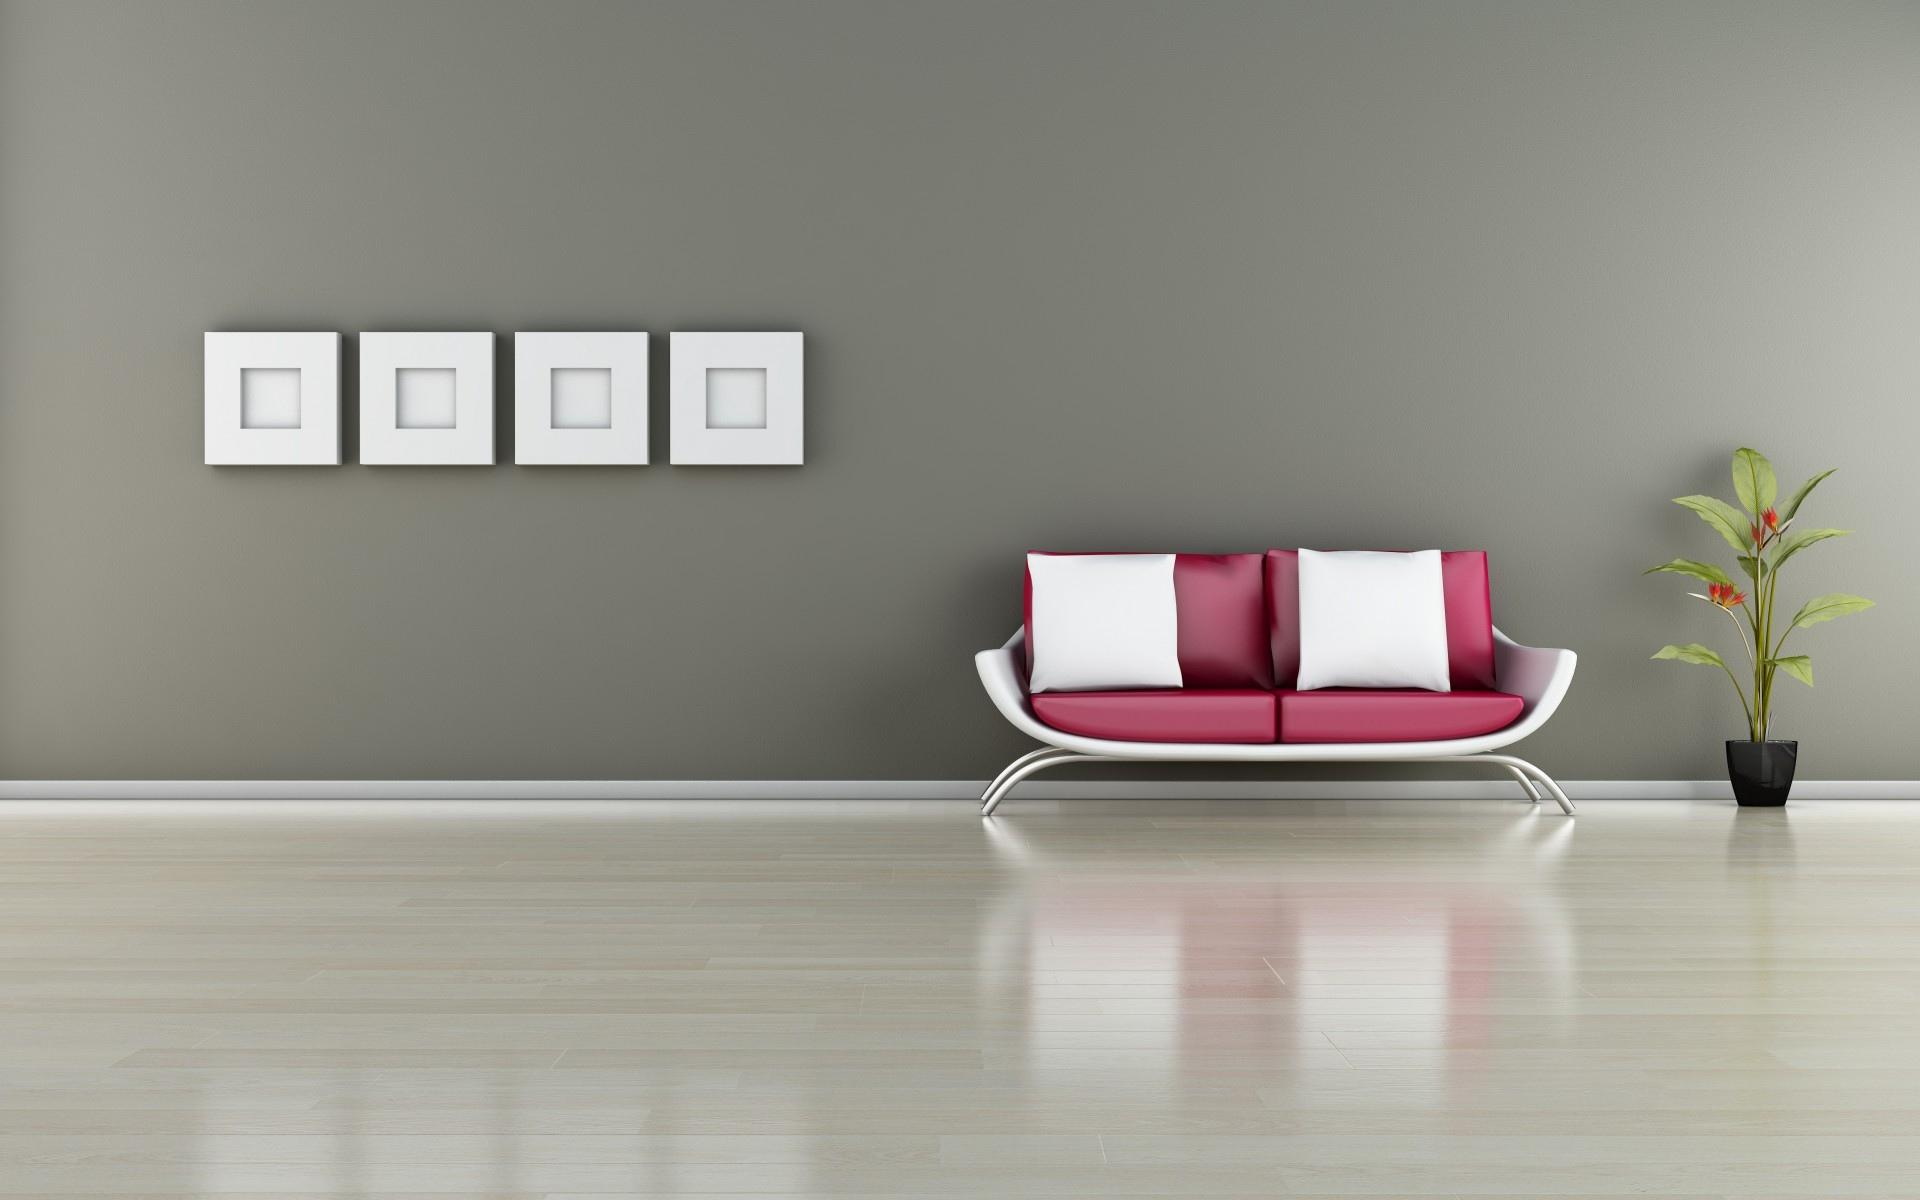 Sofa at 750 x 1334 iPhone 6 size wallpapers HD quality